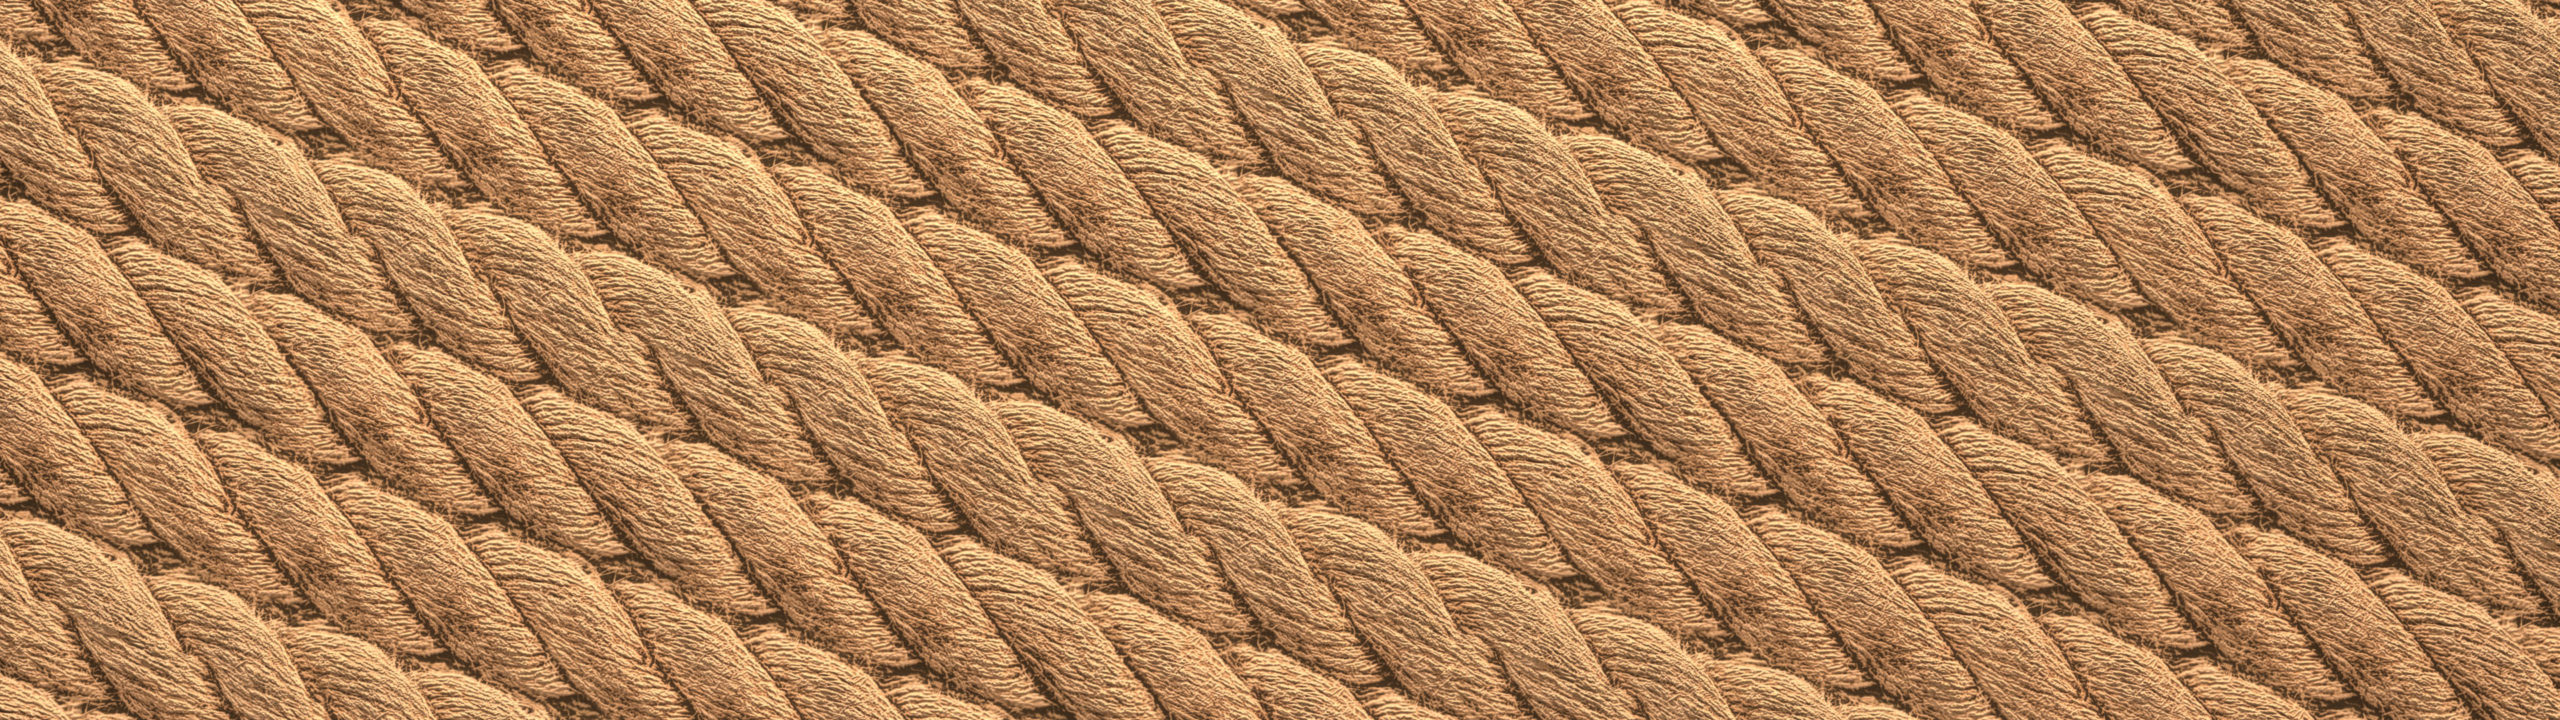 rope texture preview render